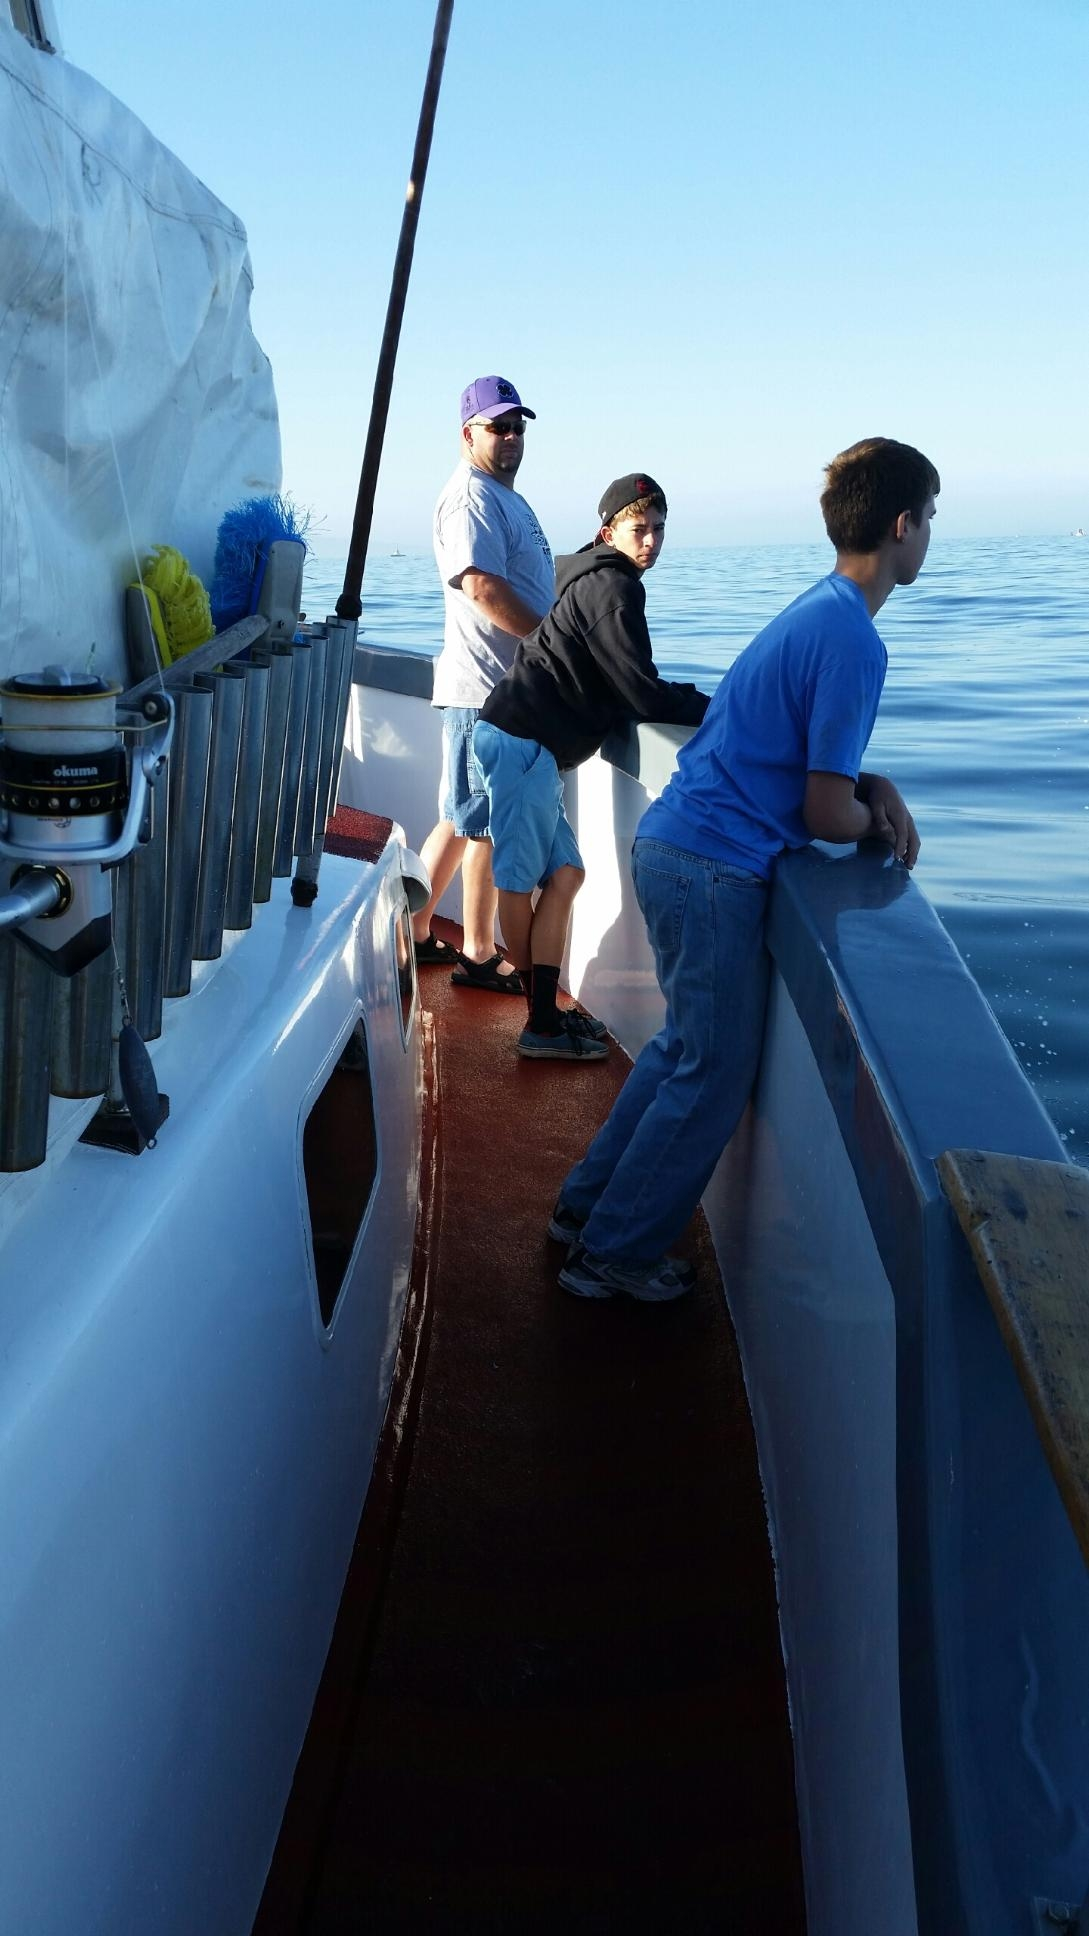 Scouts travel to california mesquite local news for Deep sea fishing california